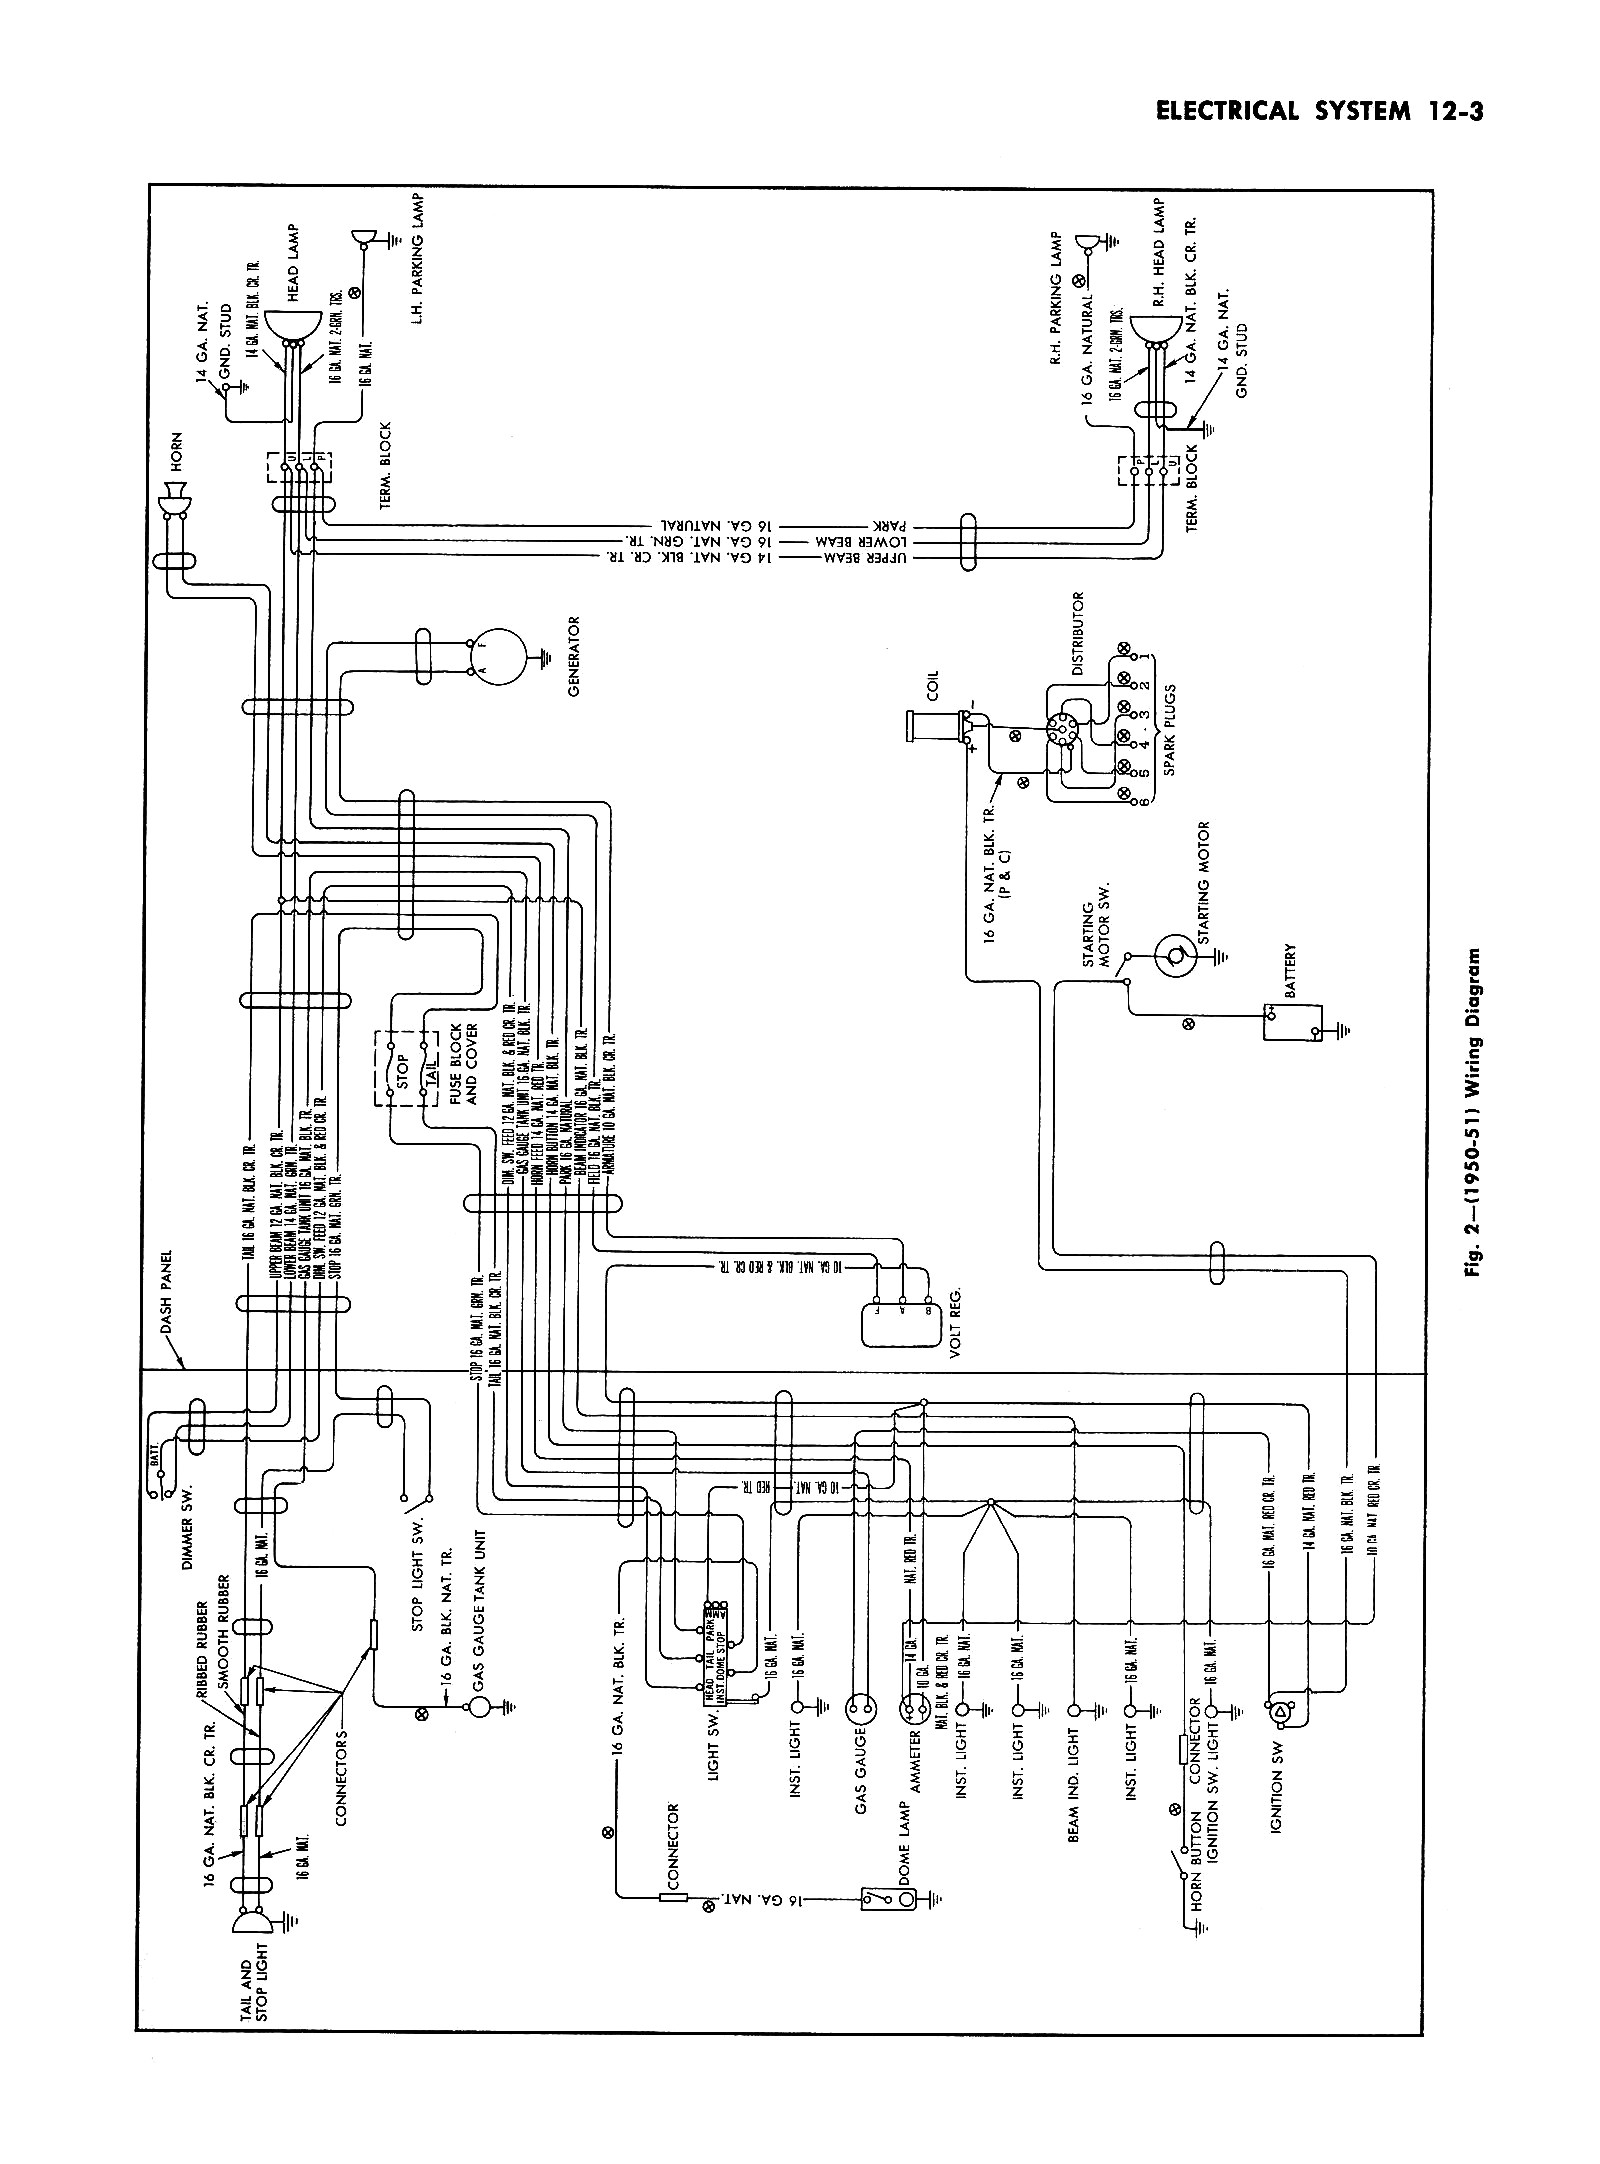 hight resolution of 1930 dodge wiring diagram wiring diagram pass1930 dodge wiring diagram wiring diagrams my 1930 dodge wiring